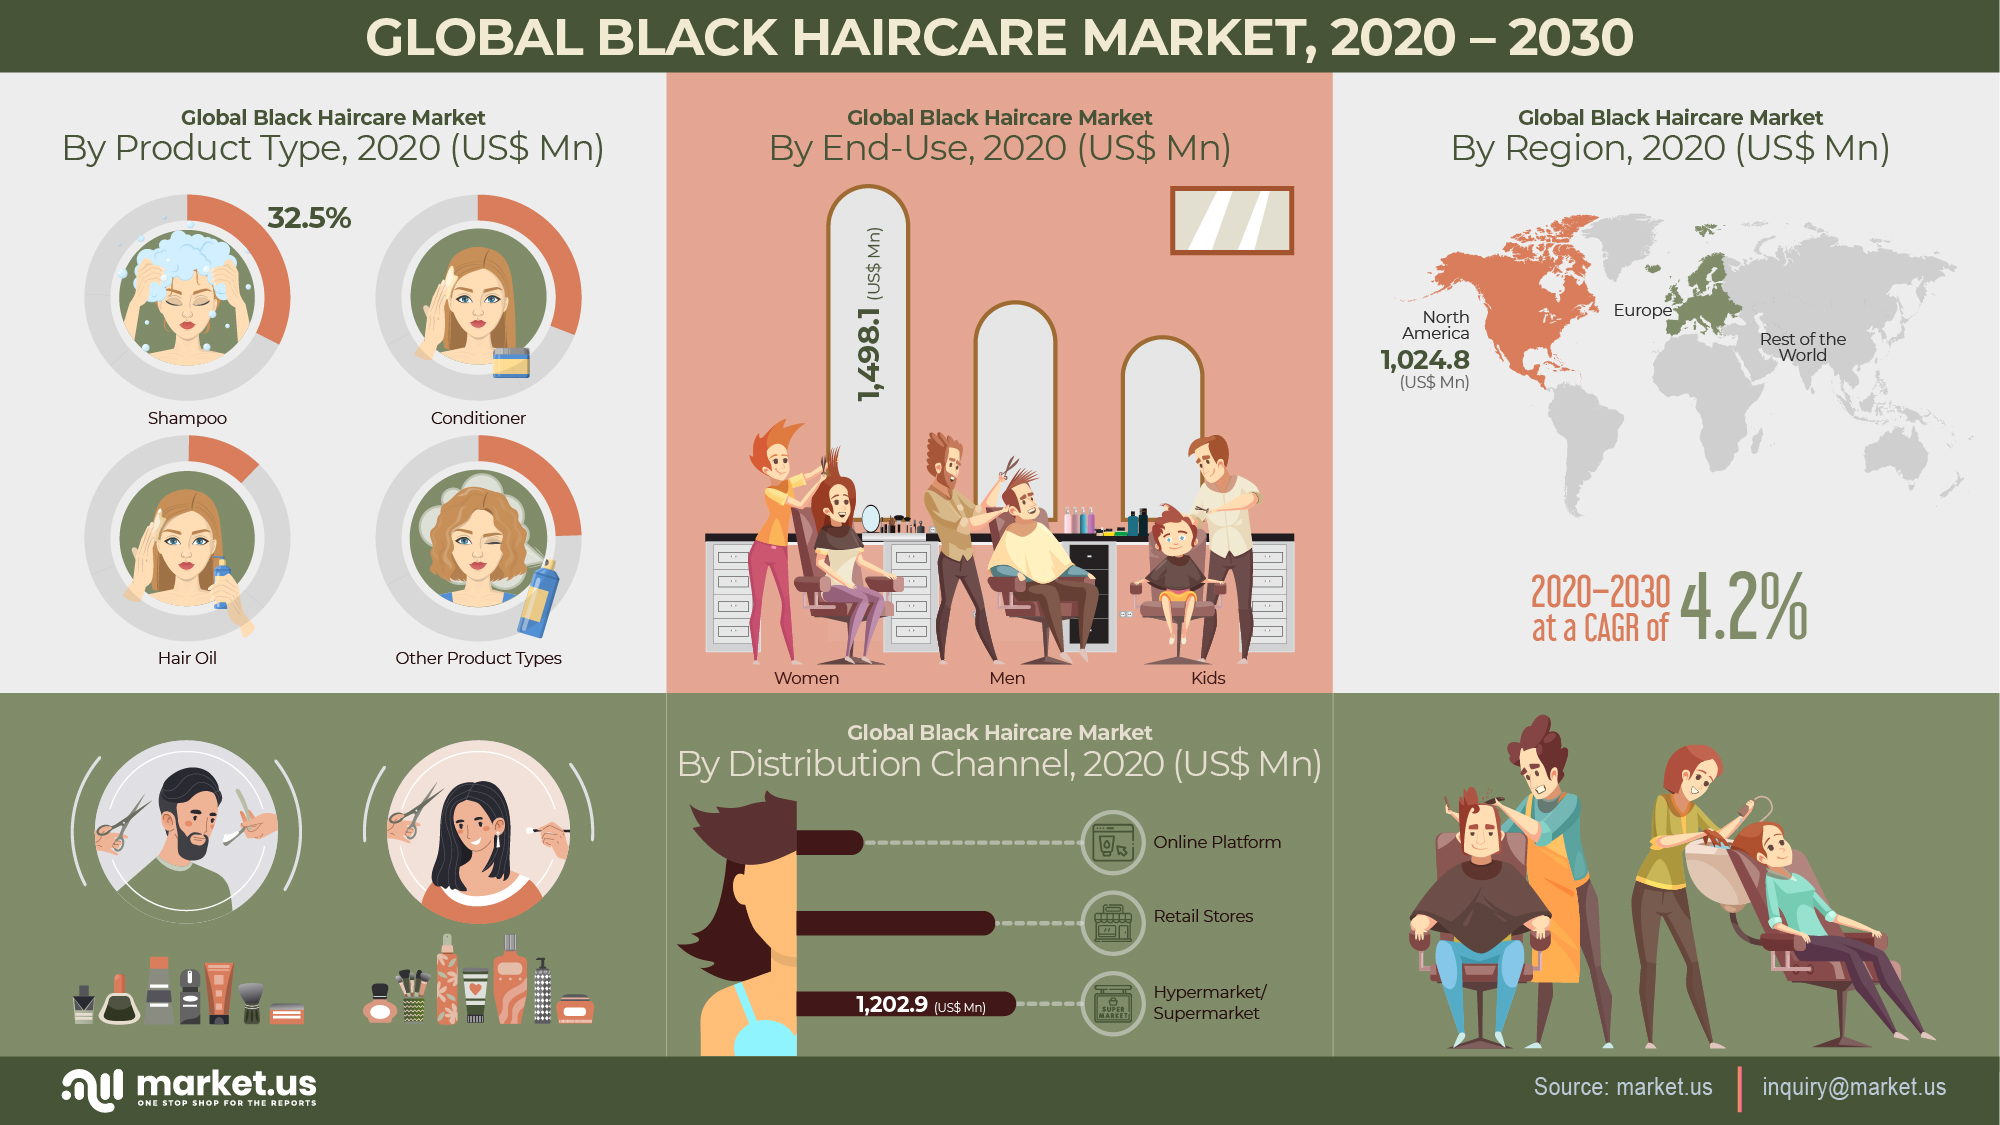 Global Black Haircare Market at a CAGR of 4.2% from 2021 to 2030